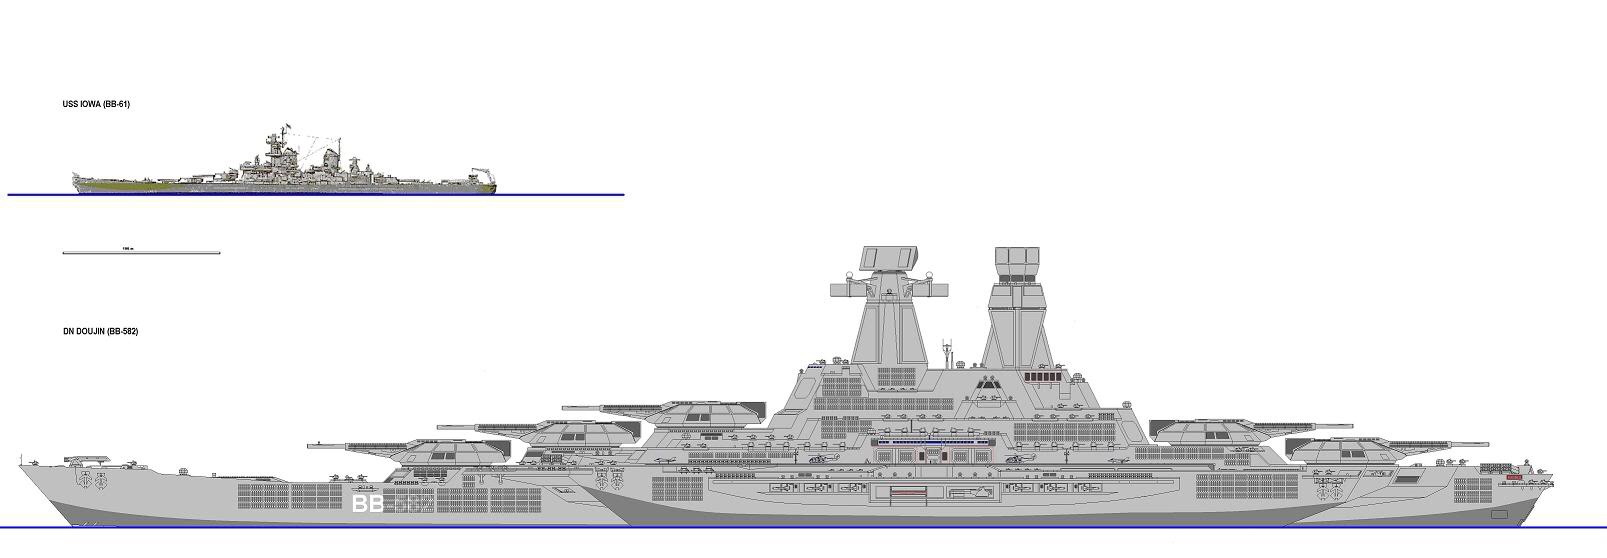 Modern Battleship Design Largest Battleship Des...